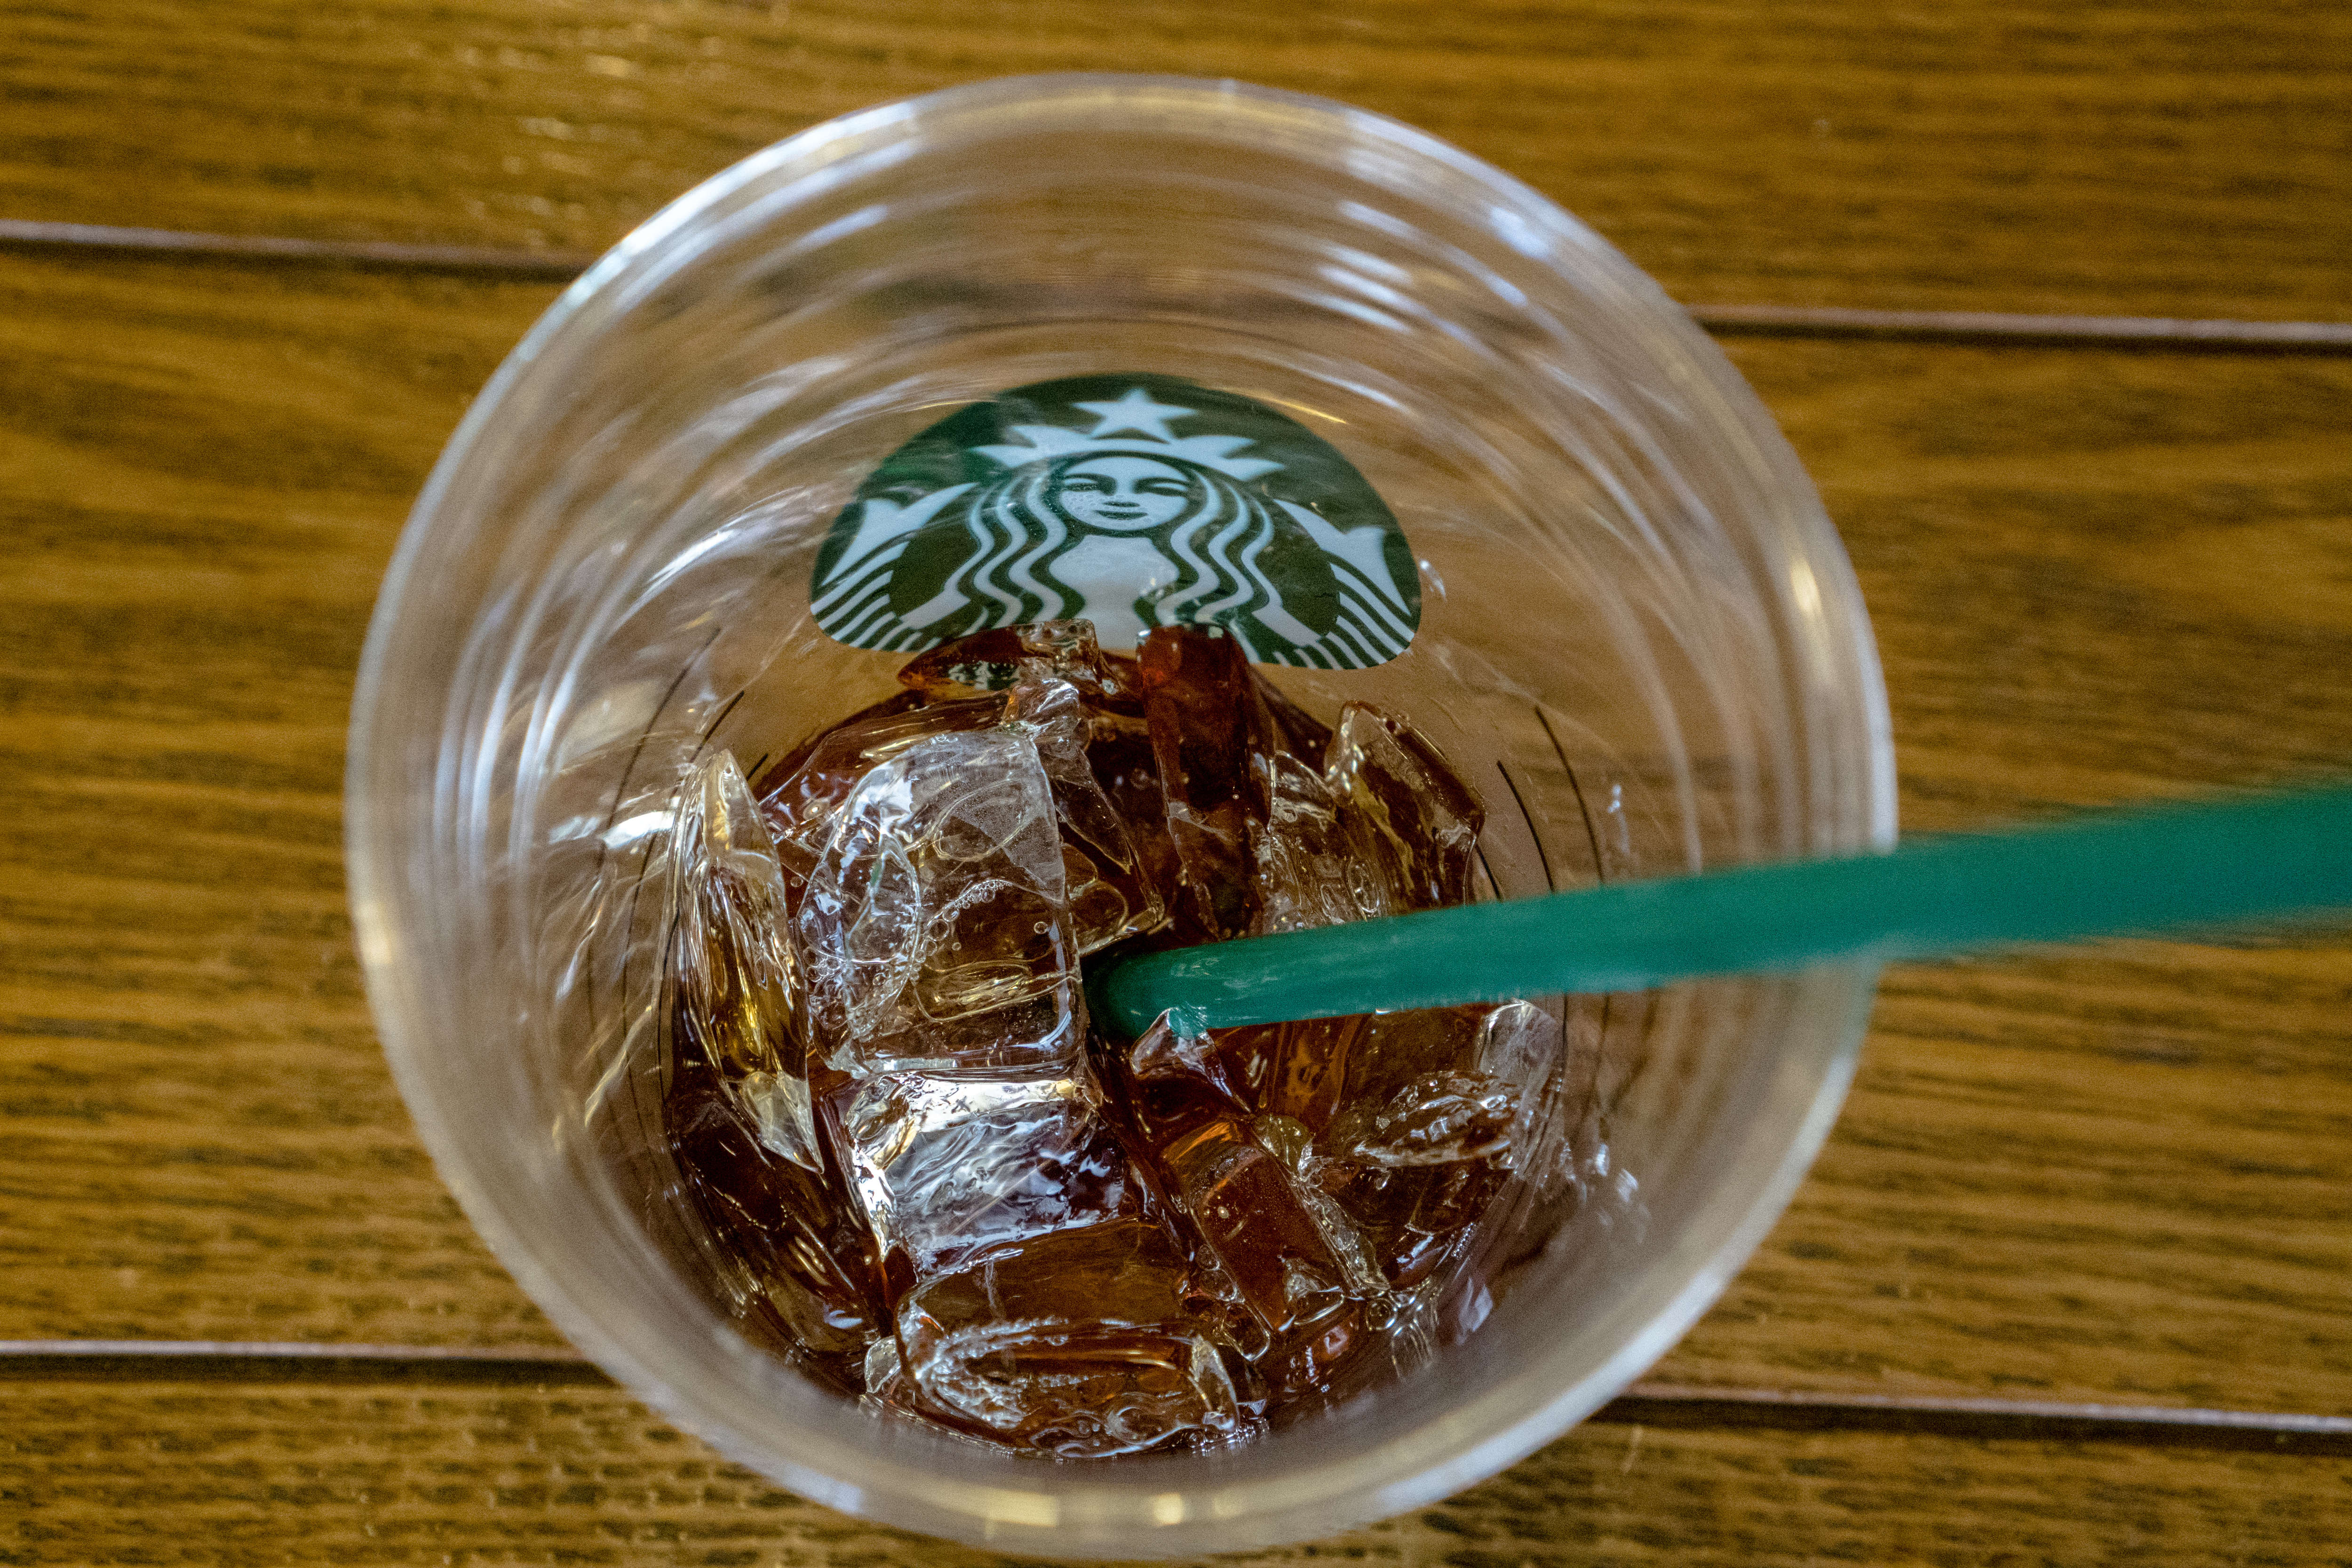 Icy drink in Starbucks coffee shop.  During the third